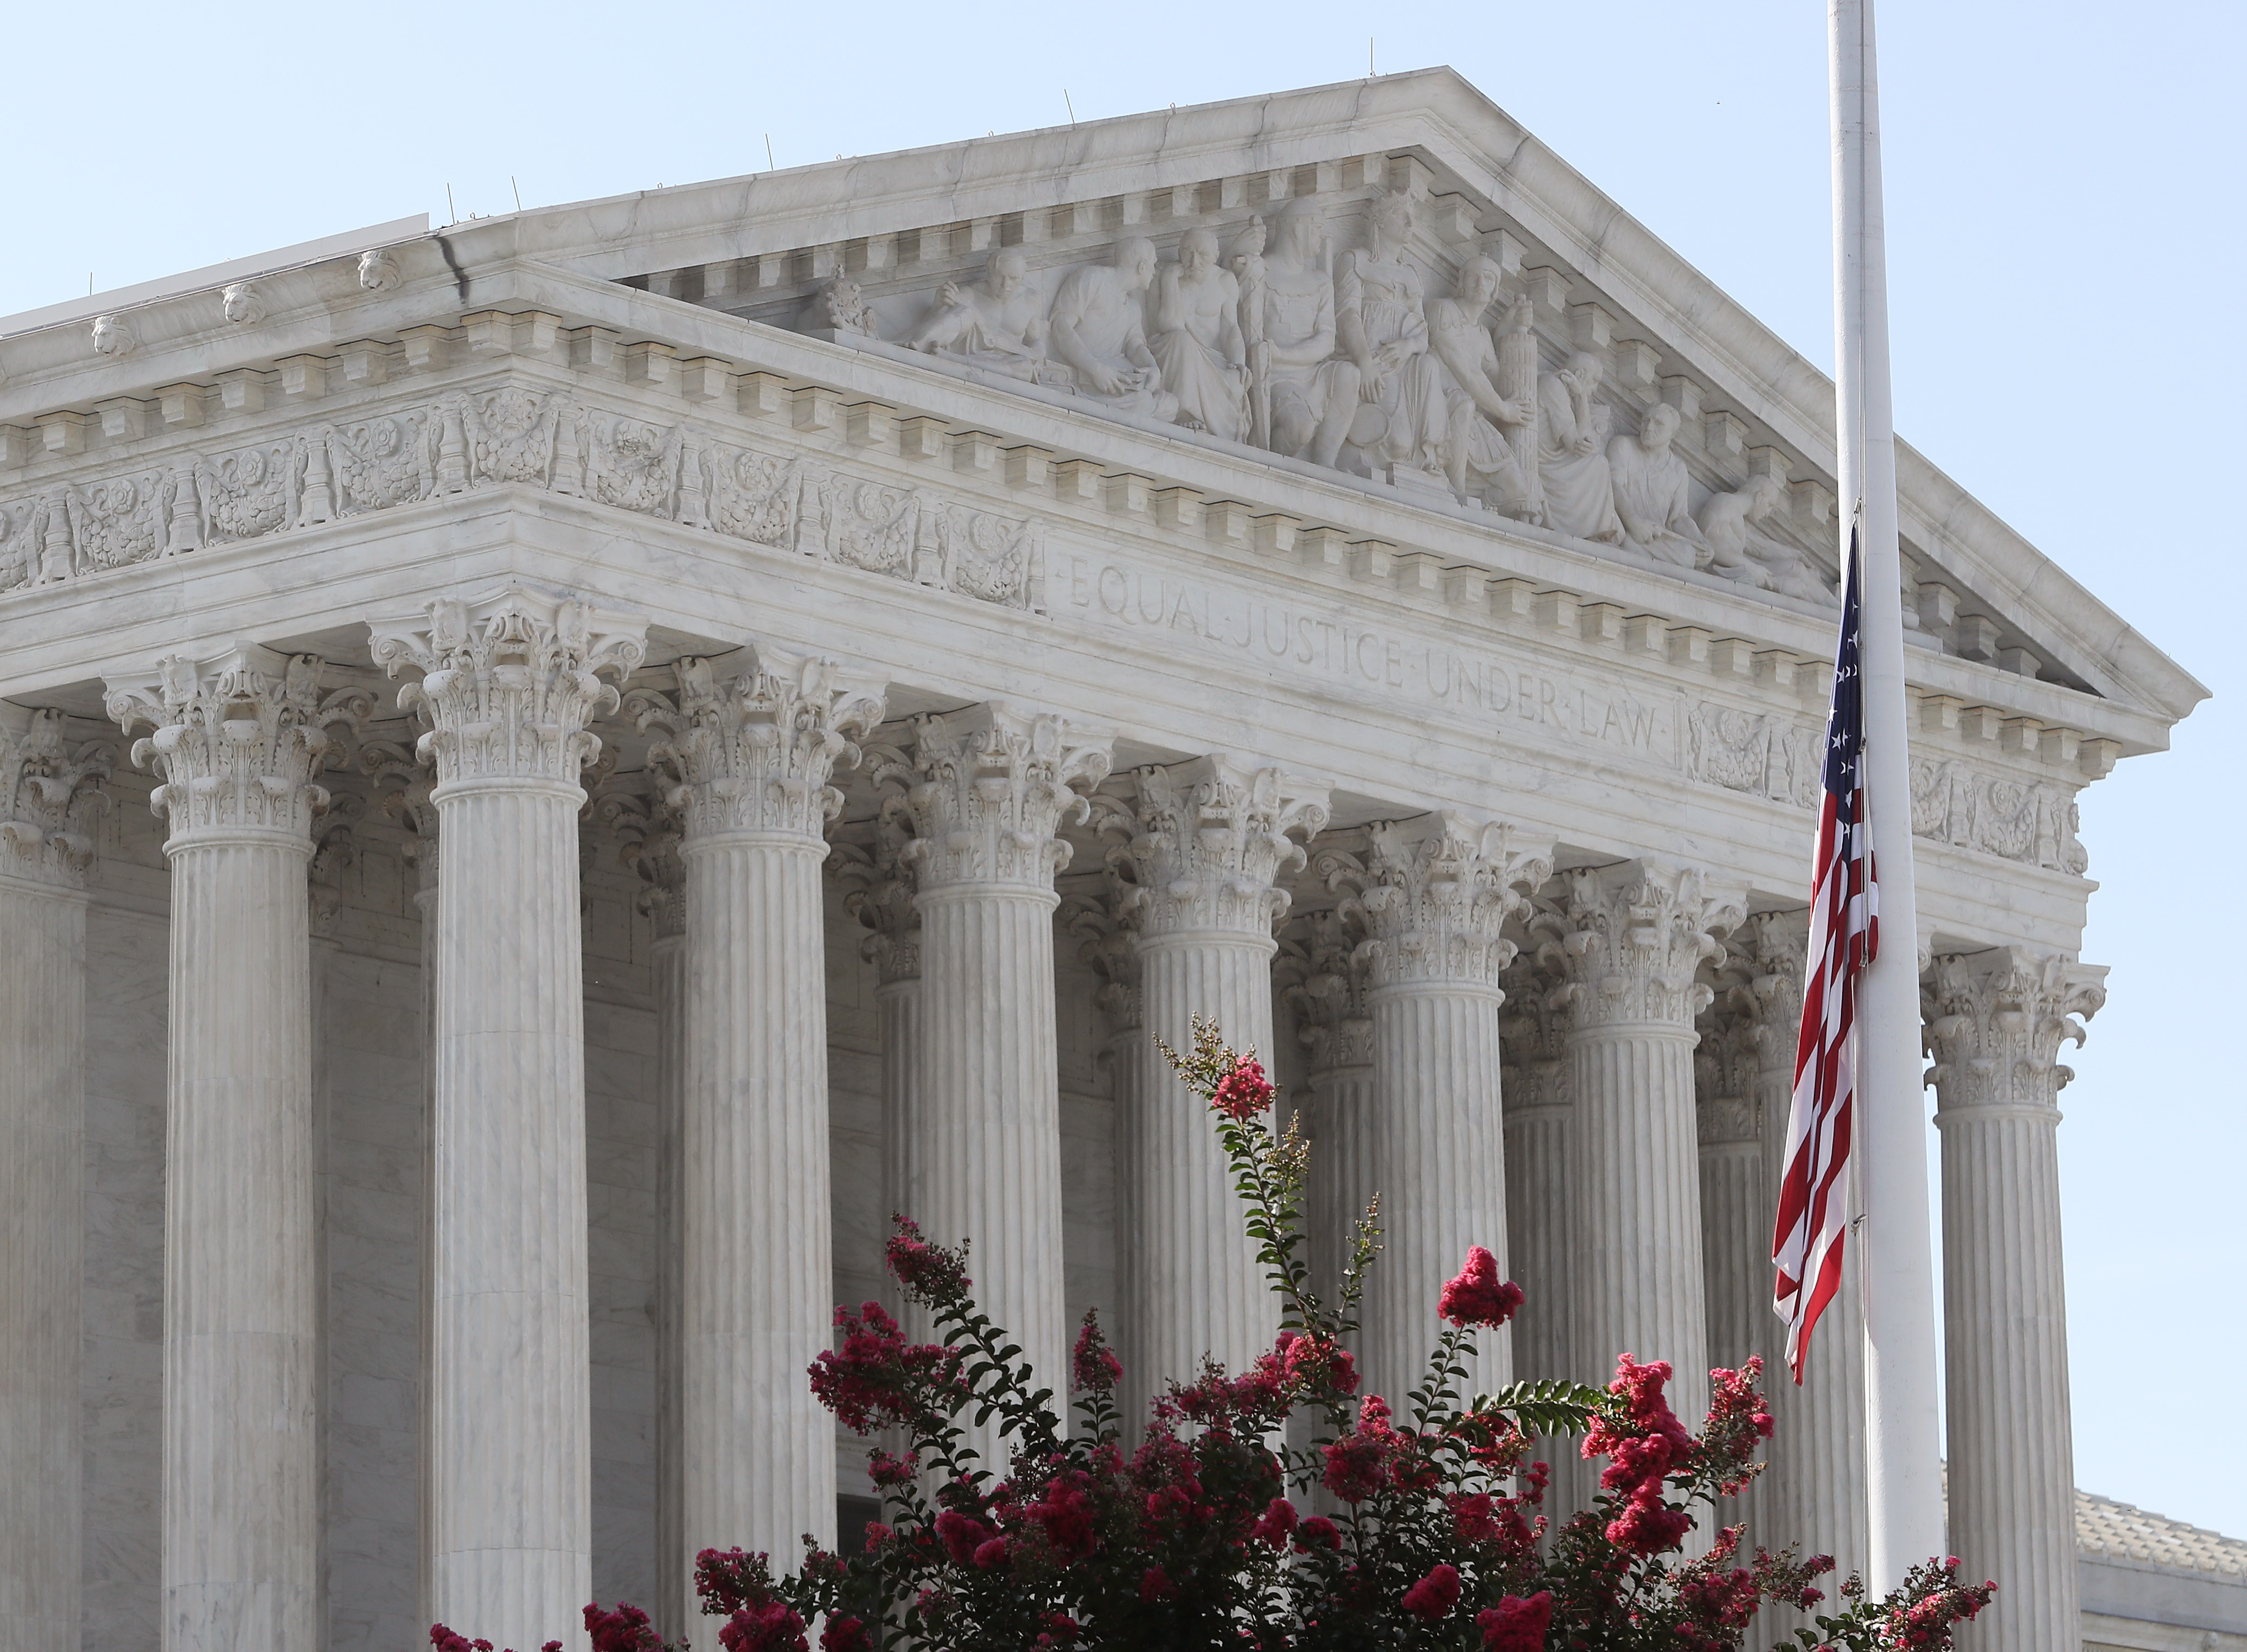 Flags are at half-staff in front of the Supreme Court to honor retired Justice John Paul Stevens who died on July 17, 2019. (Mark Wilson/Getty Images)